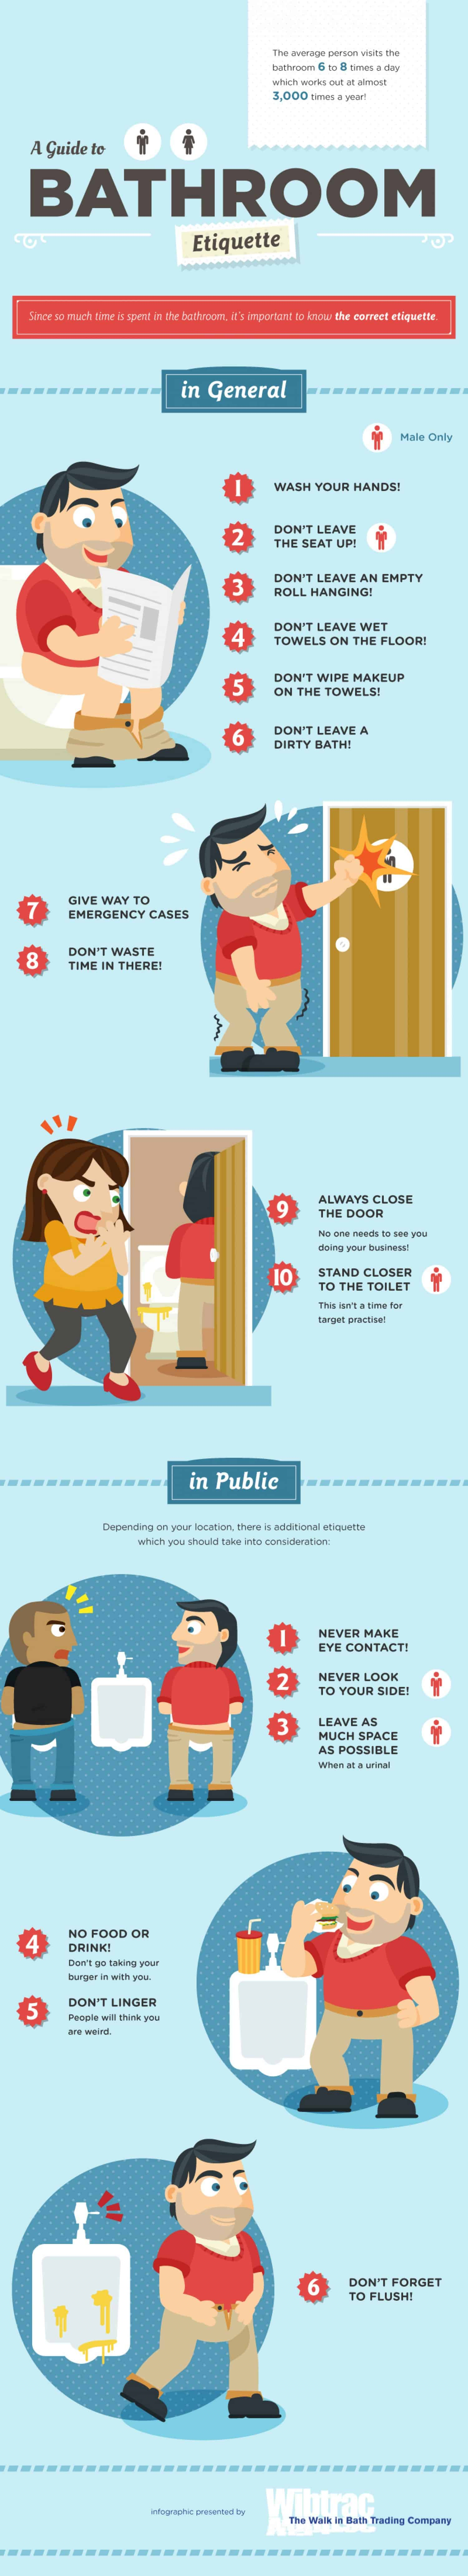 Bathroom Etiquette the ultimate guide to proper bathroom etiquette | daily infographic